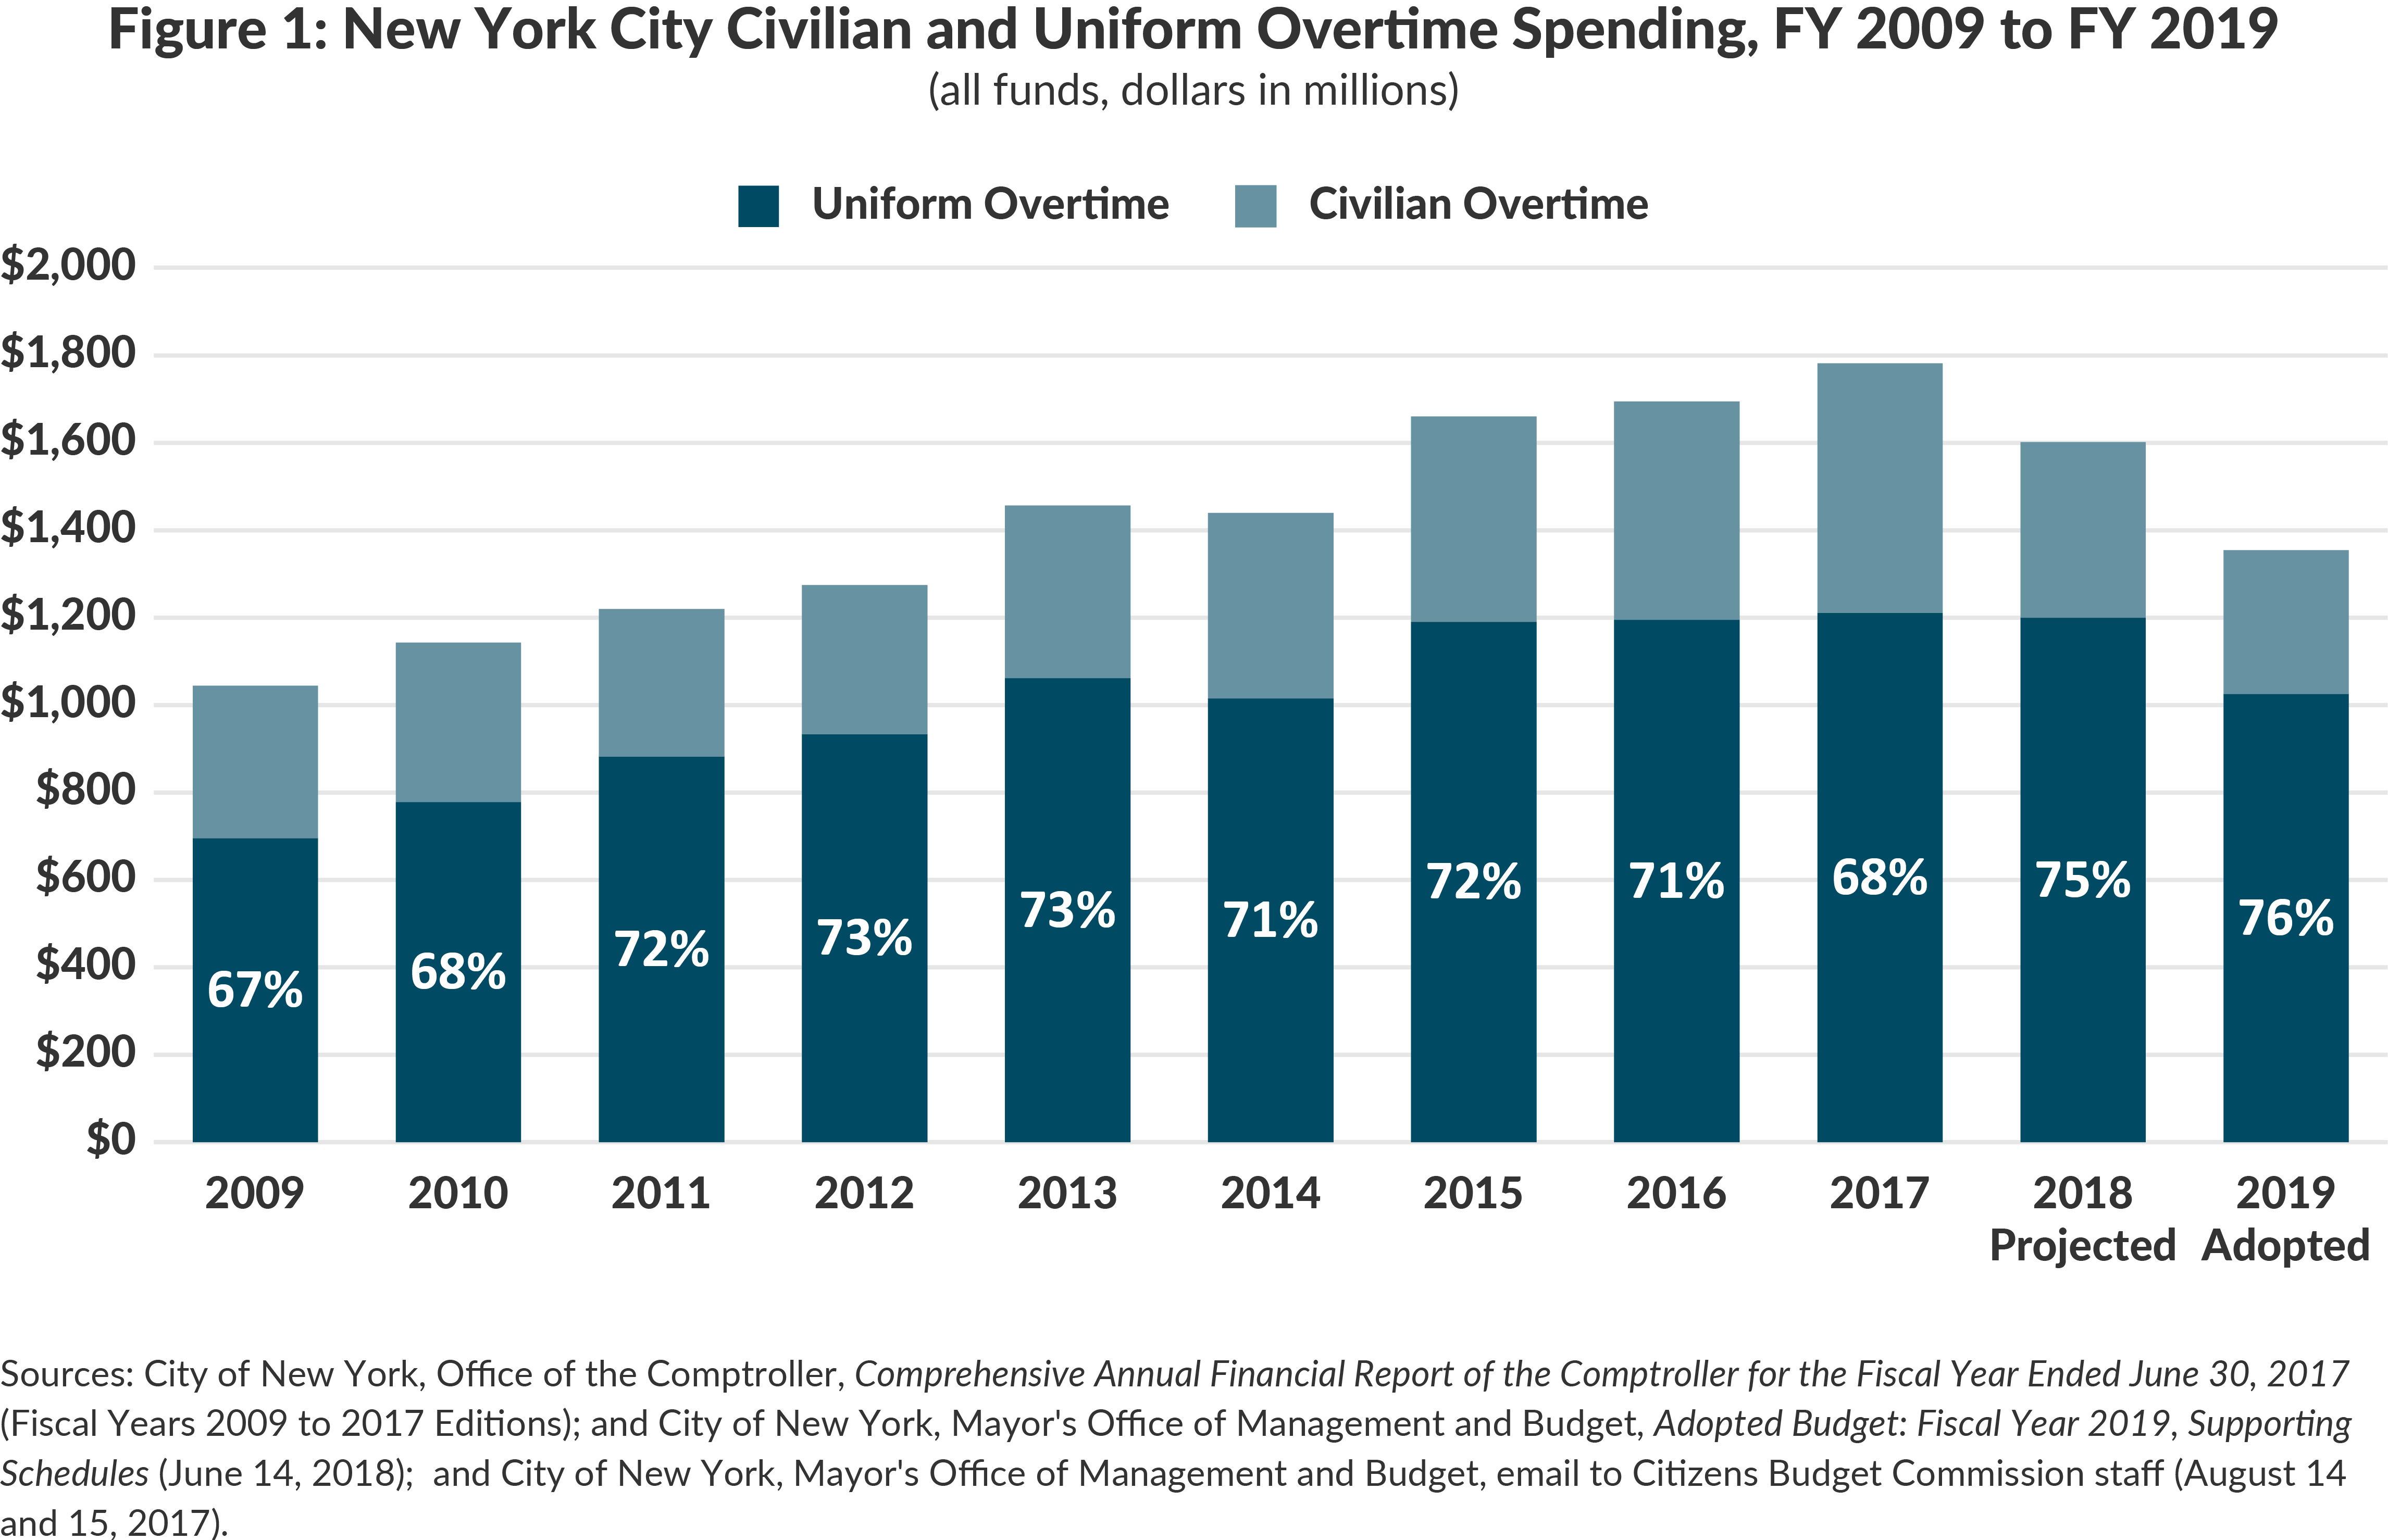 Figure 1: New York City Civilian and Uniform Overtime Spending, FY 2009 to FY 2019